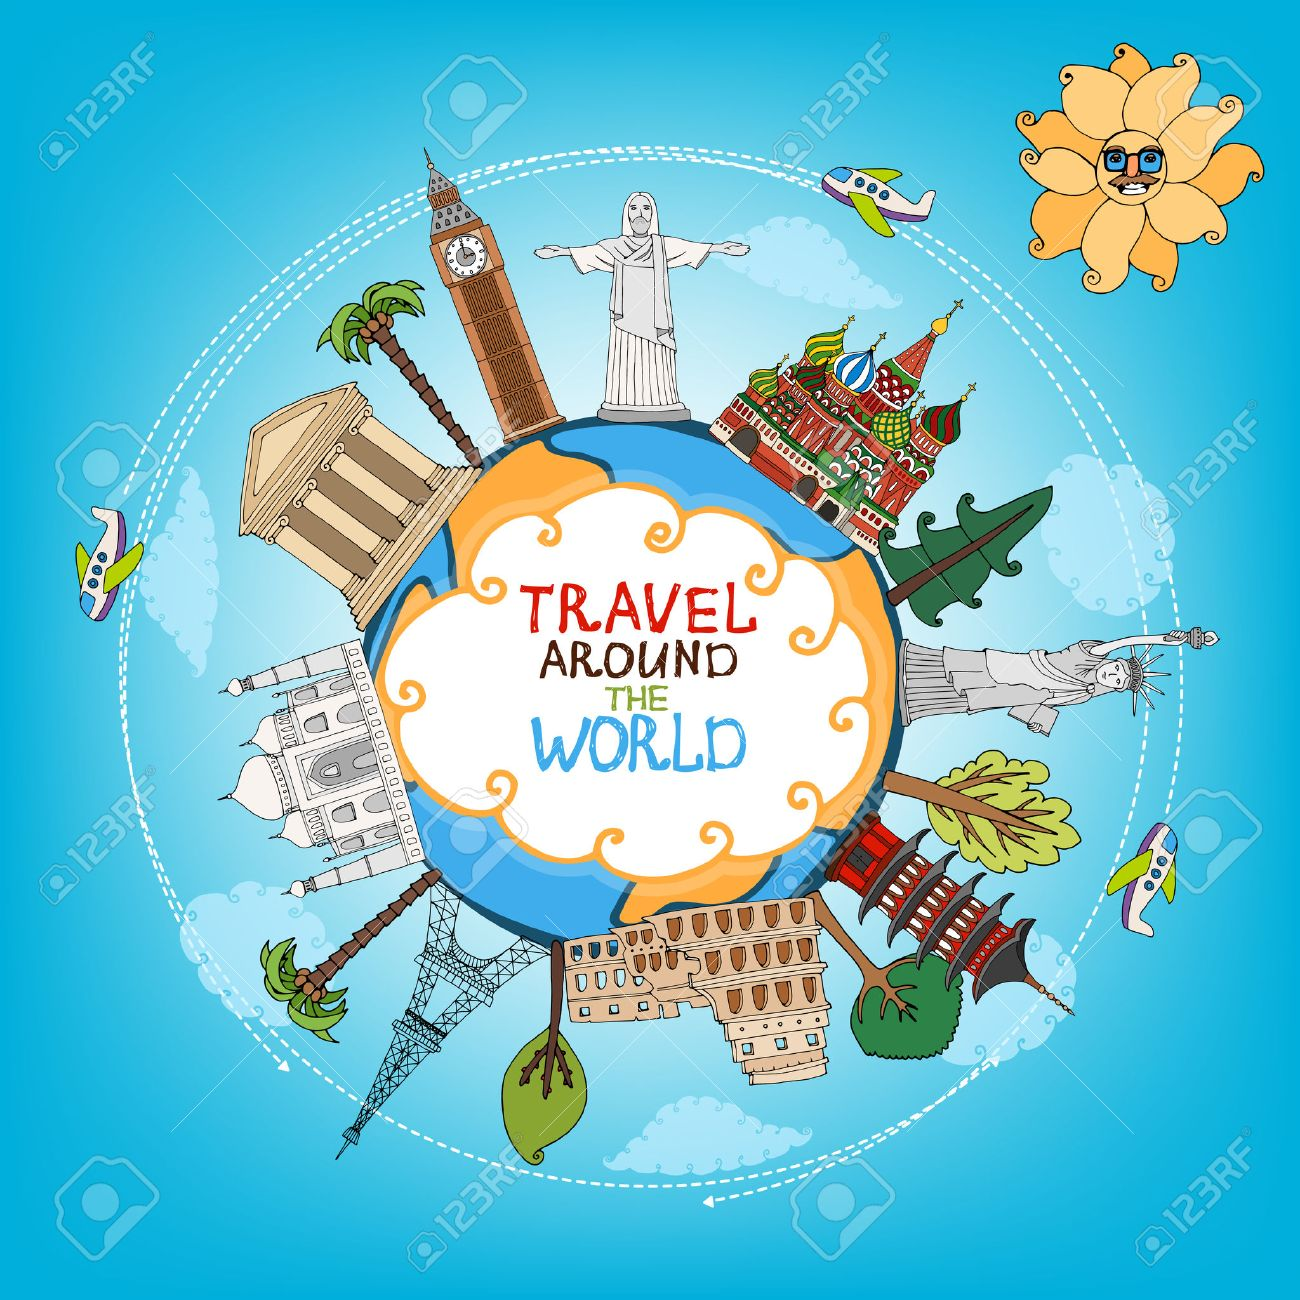 travel landmarks monuments around world with plane, sun and clouds - 27490355